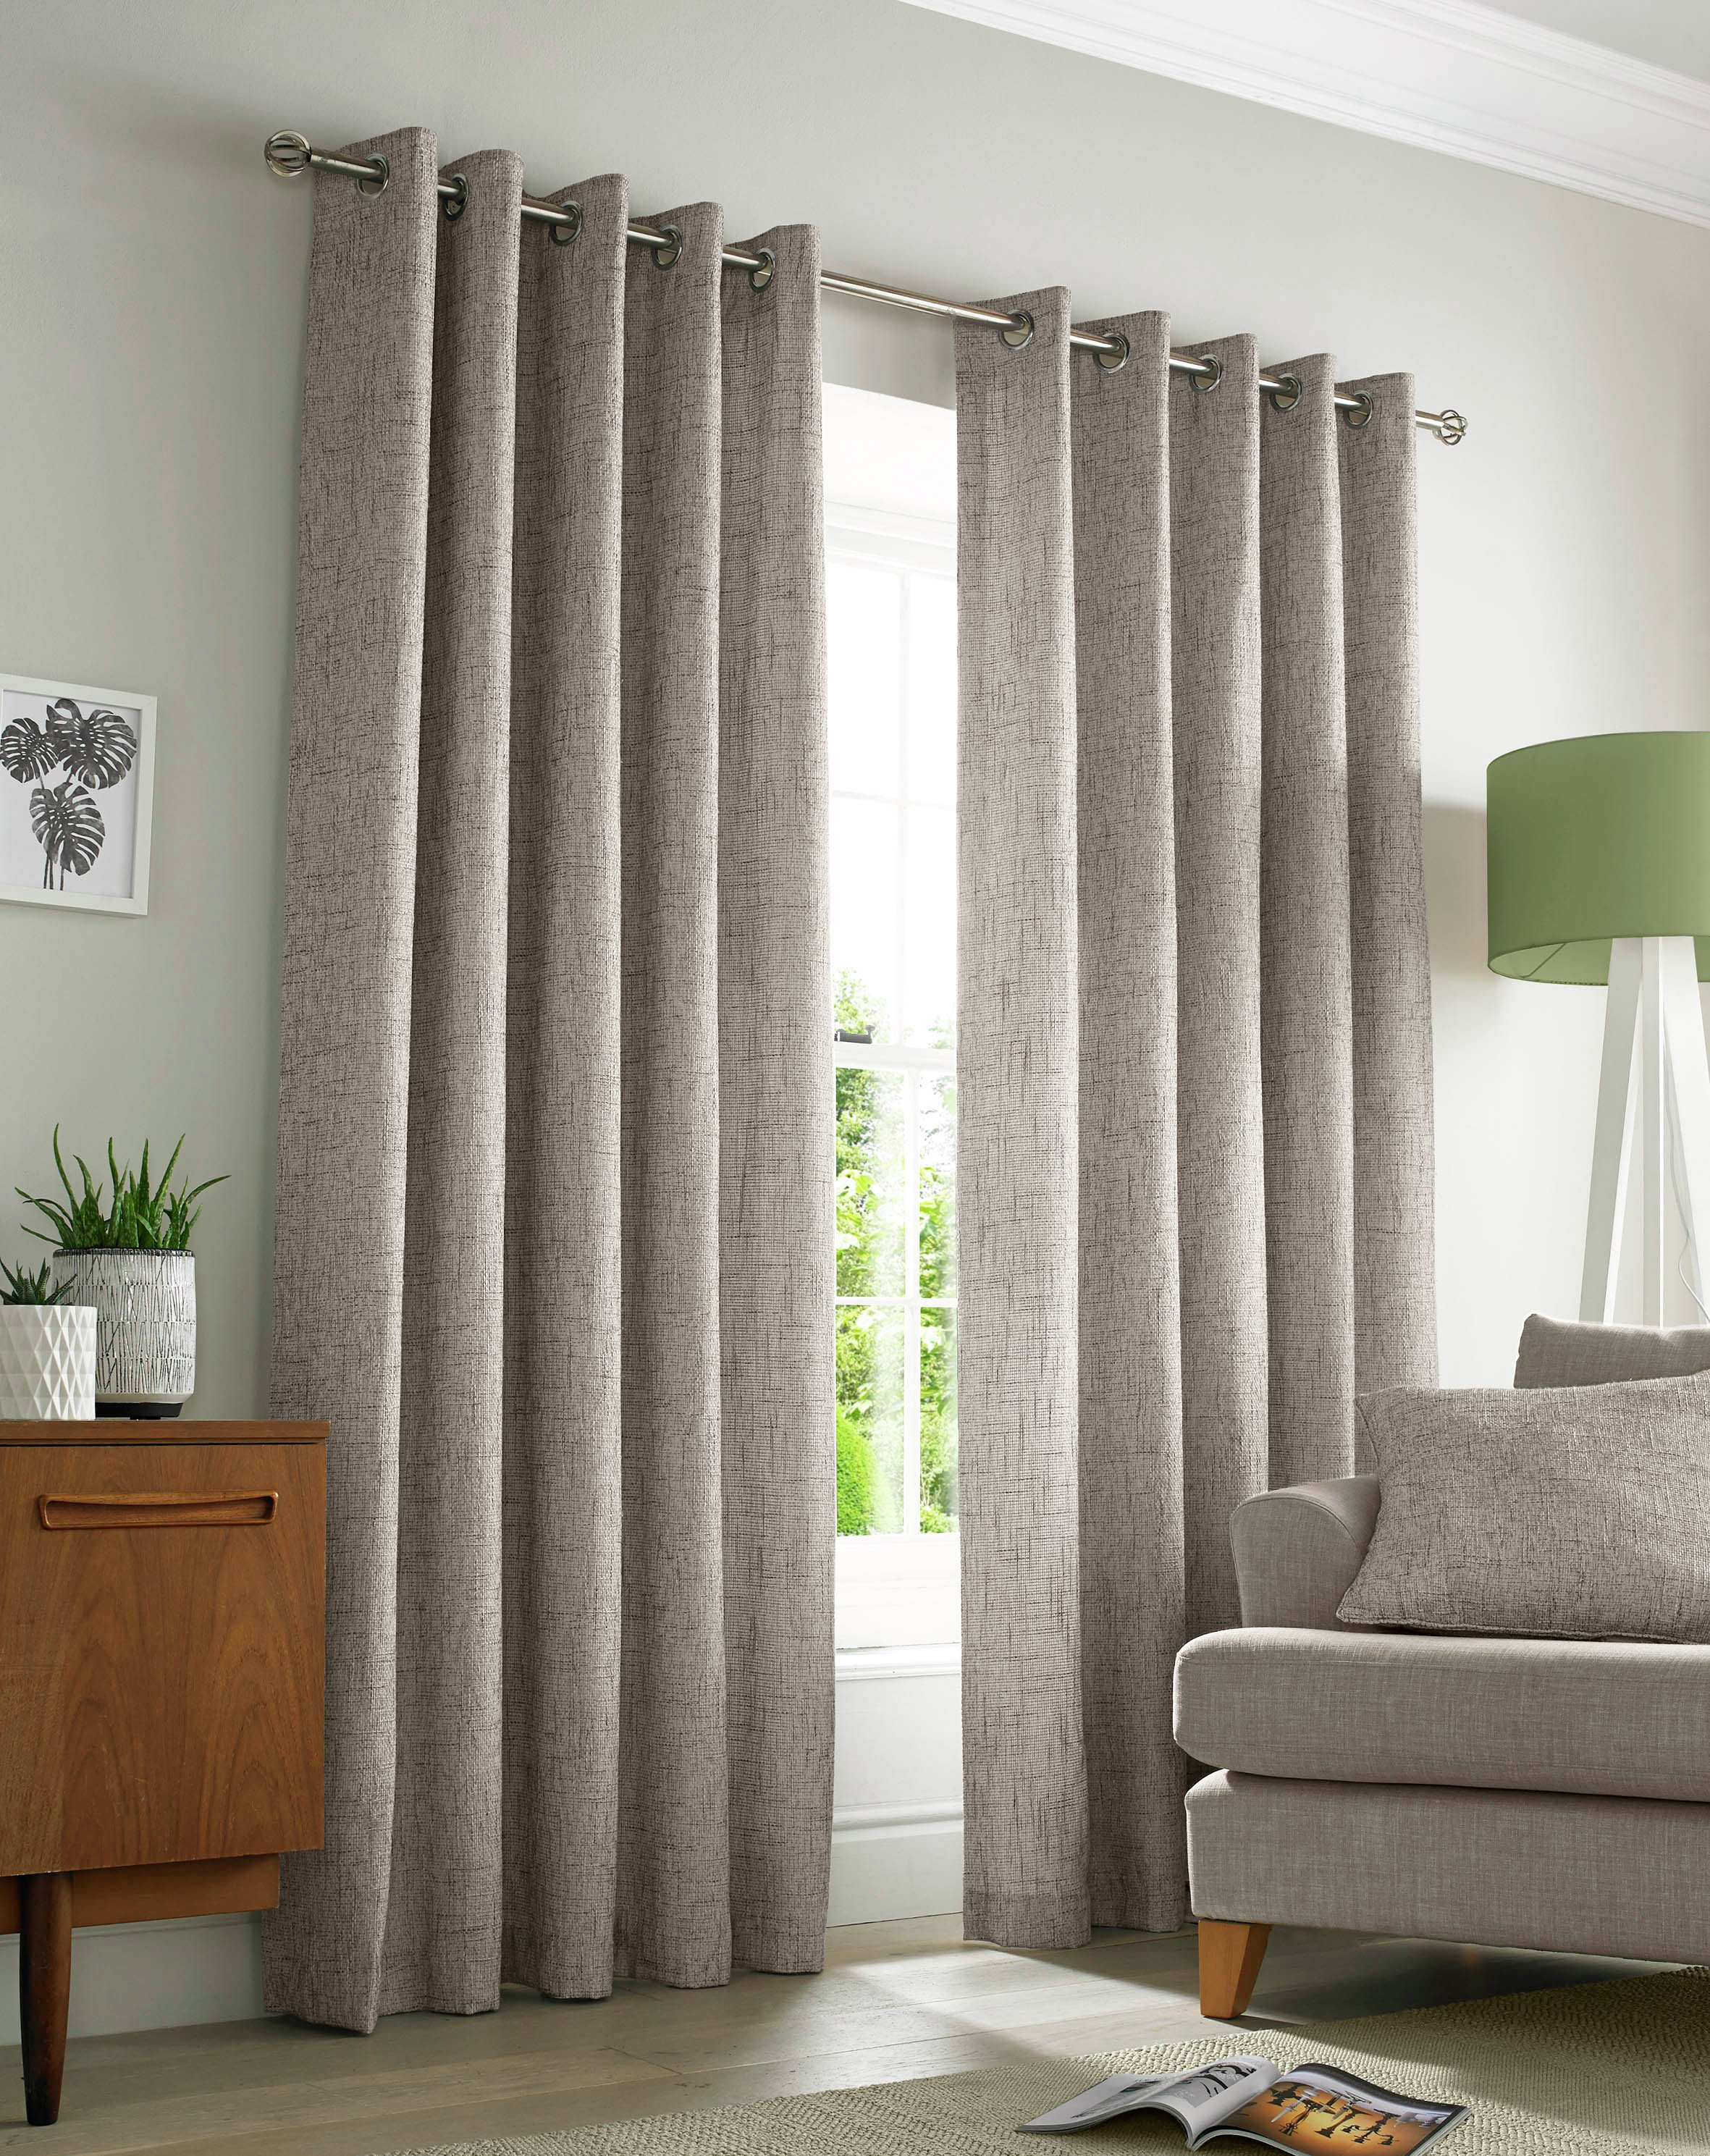 Academy Eyelet Curtains - 229x183cm - Natural.